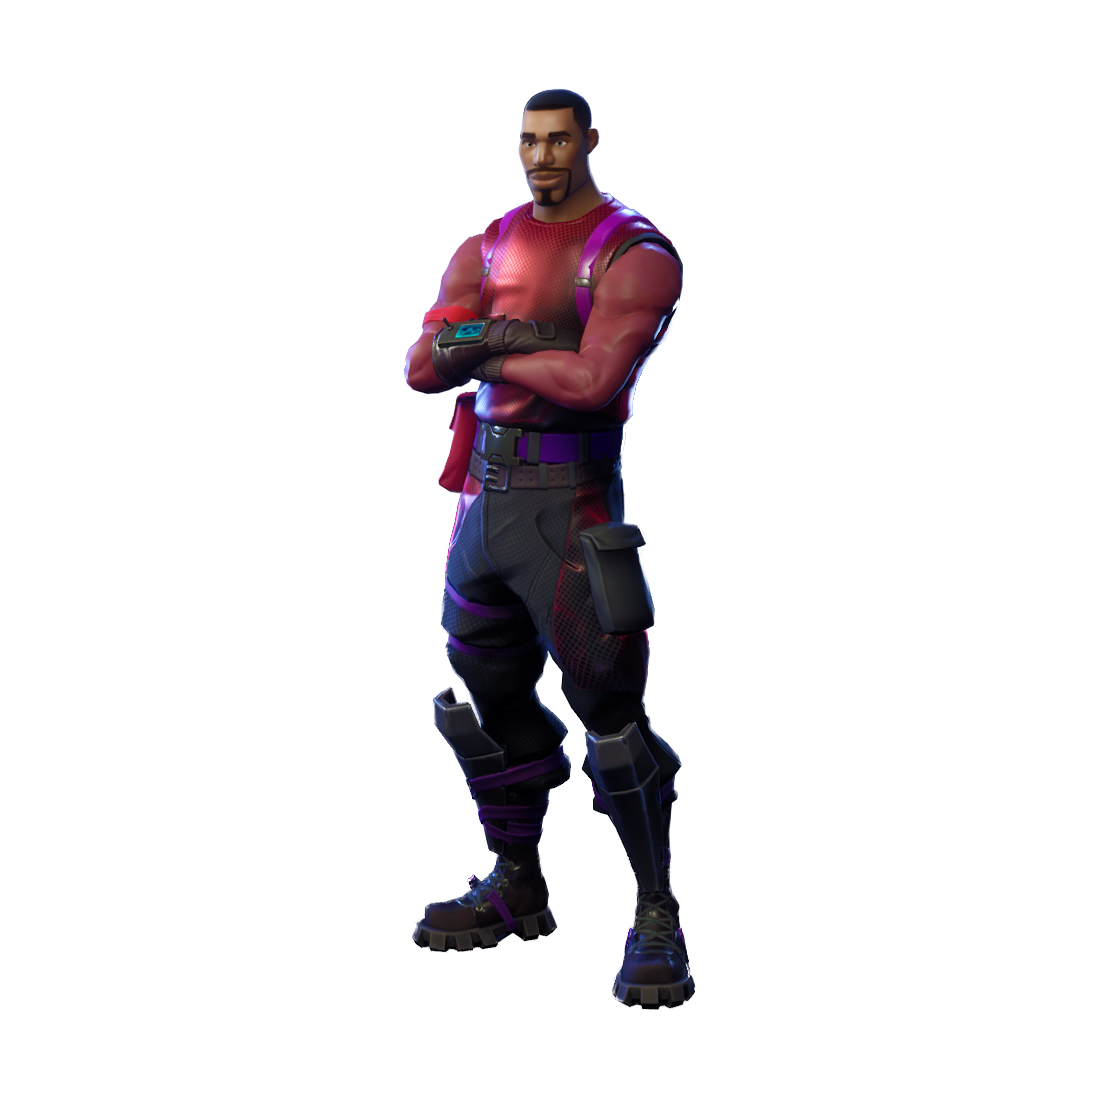 Rare Radiant Striker Outfit